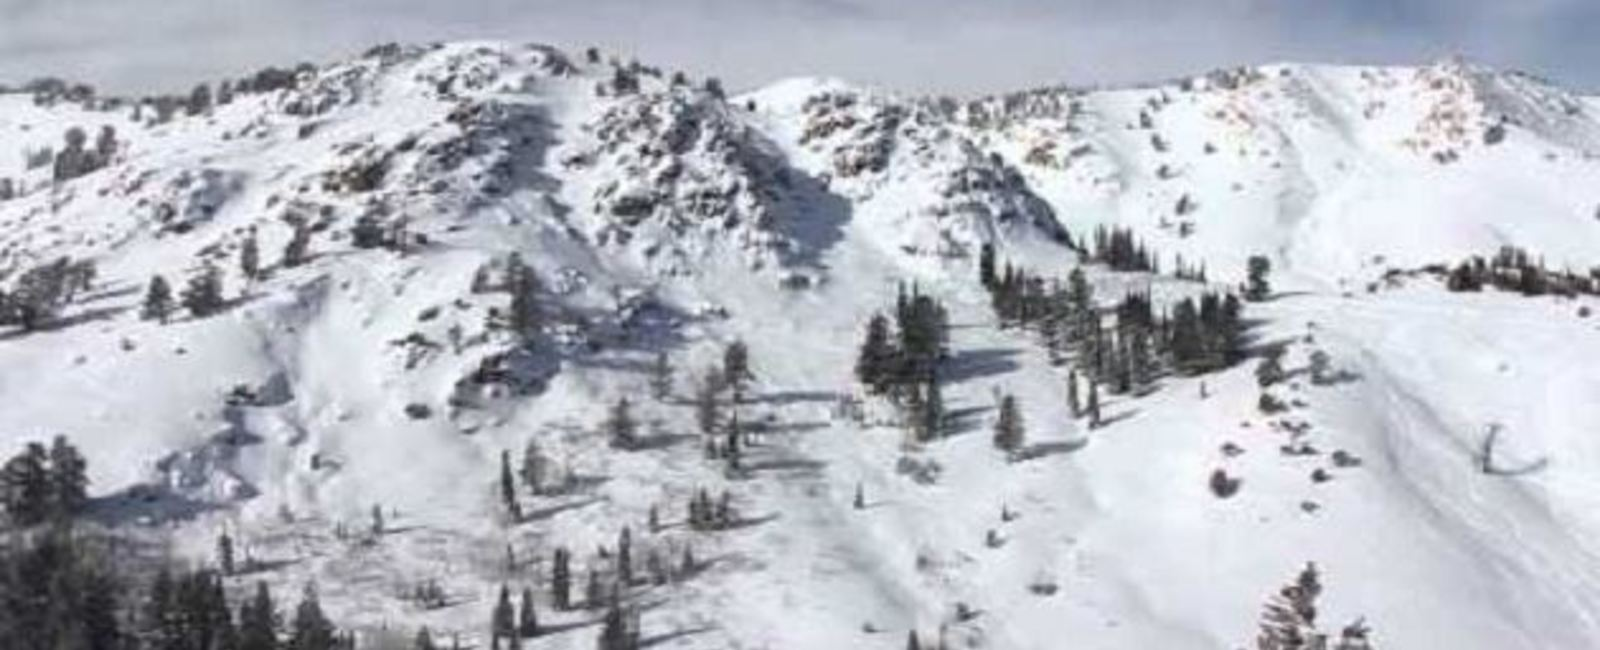 Bluebird Powder Day at Powder Mountain - 1-24-2012